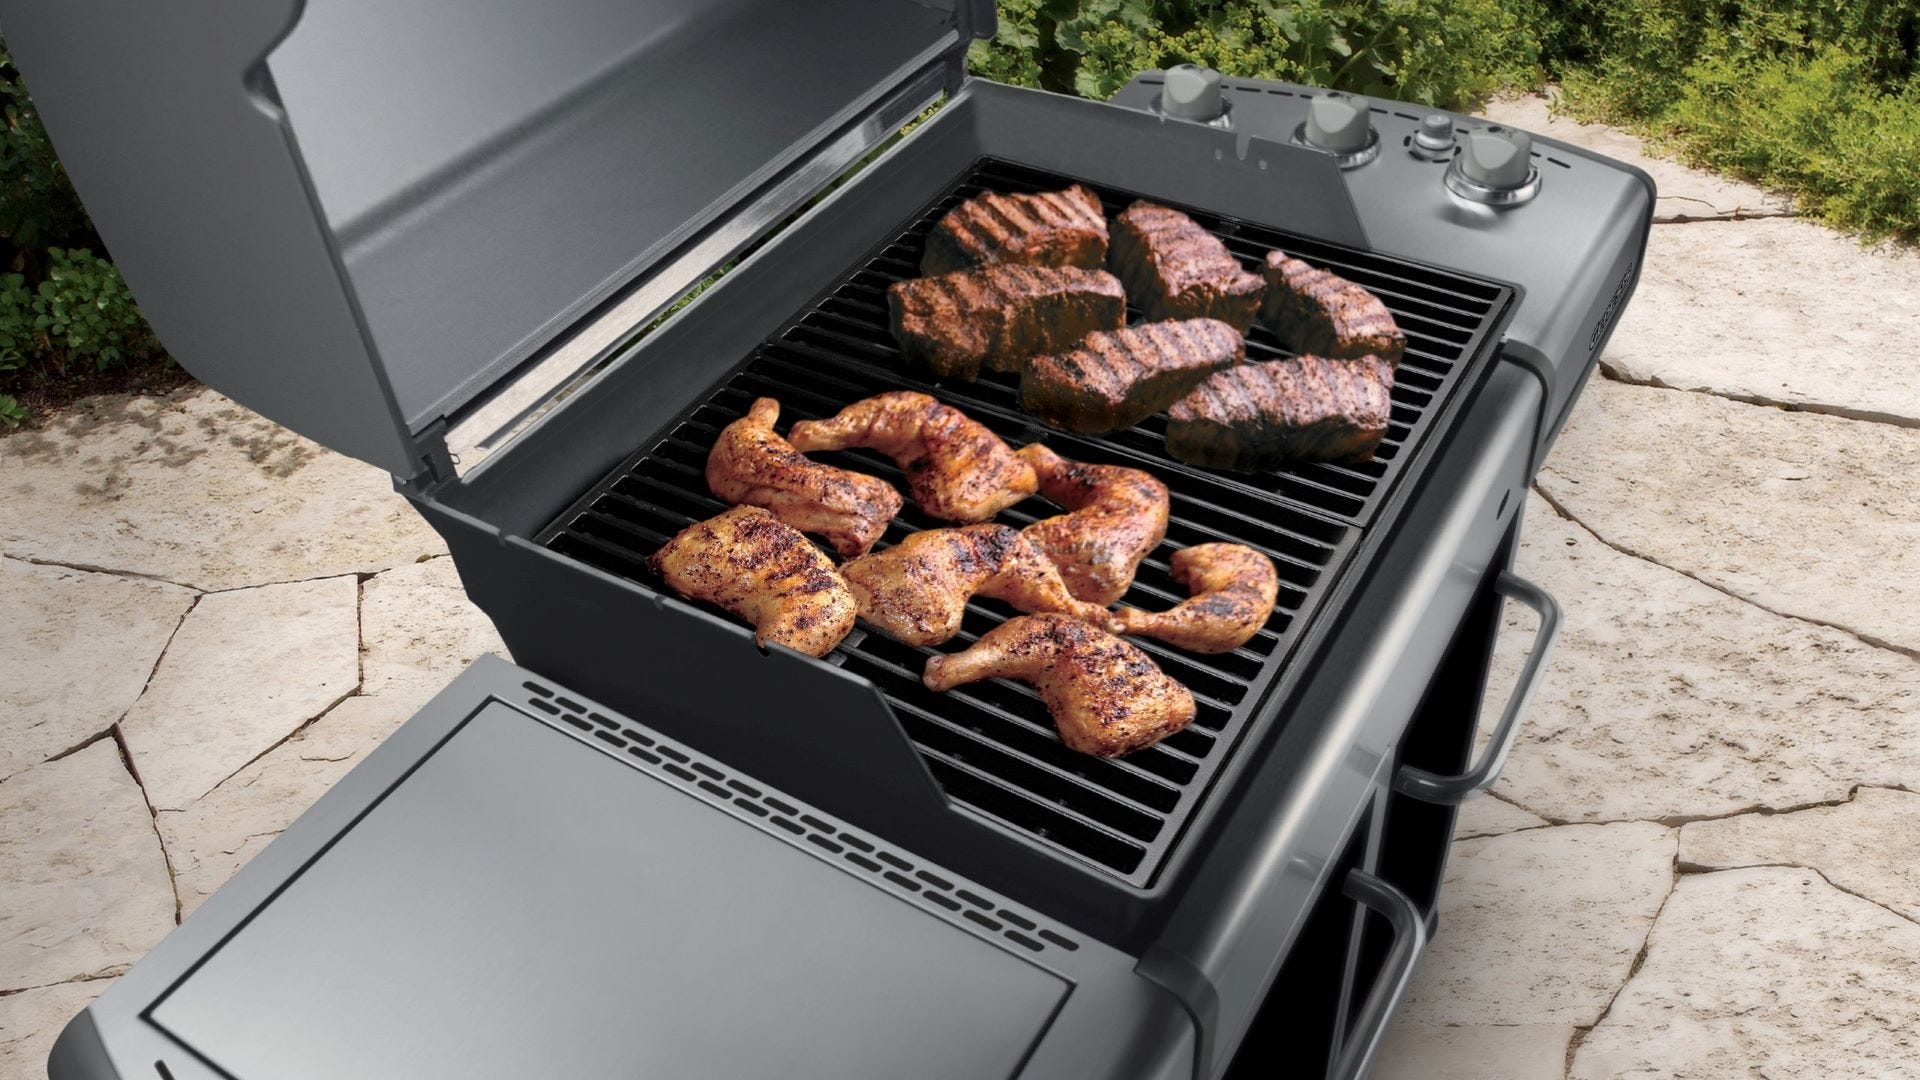 Various meats roasting on Weber grill grates.